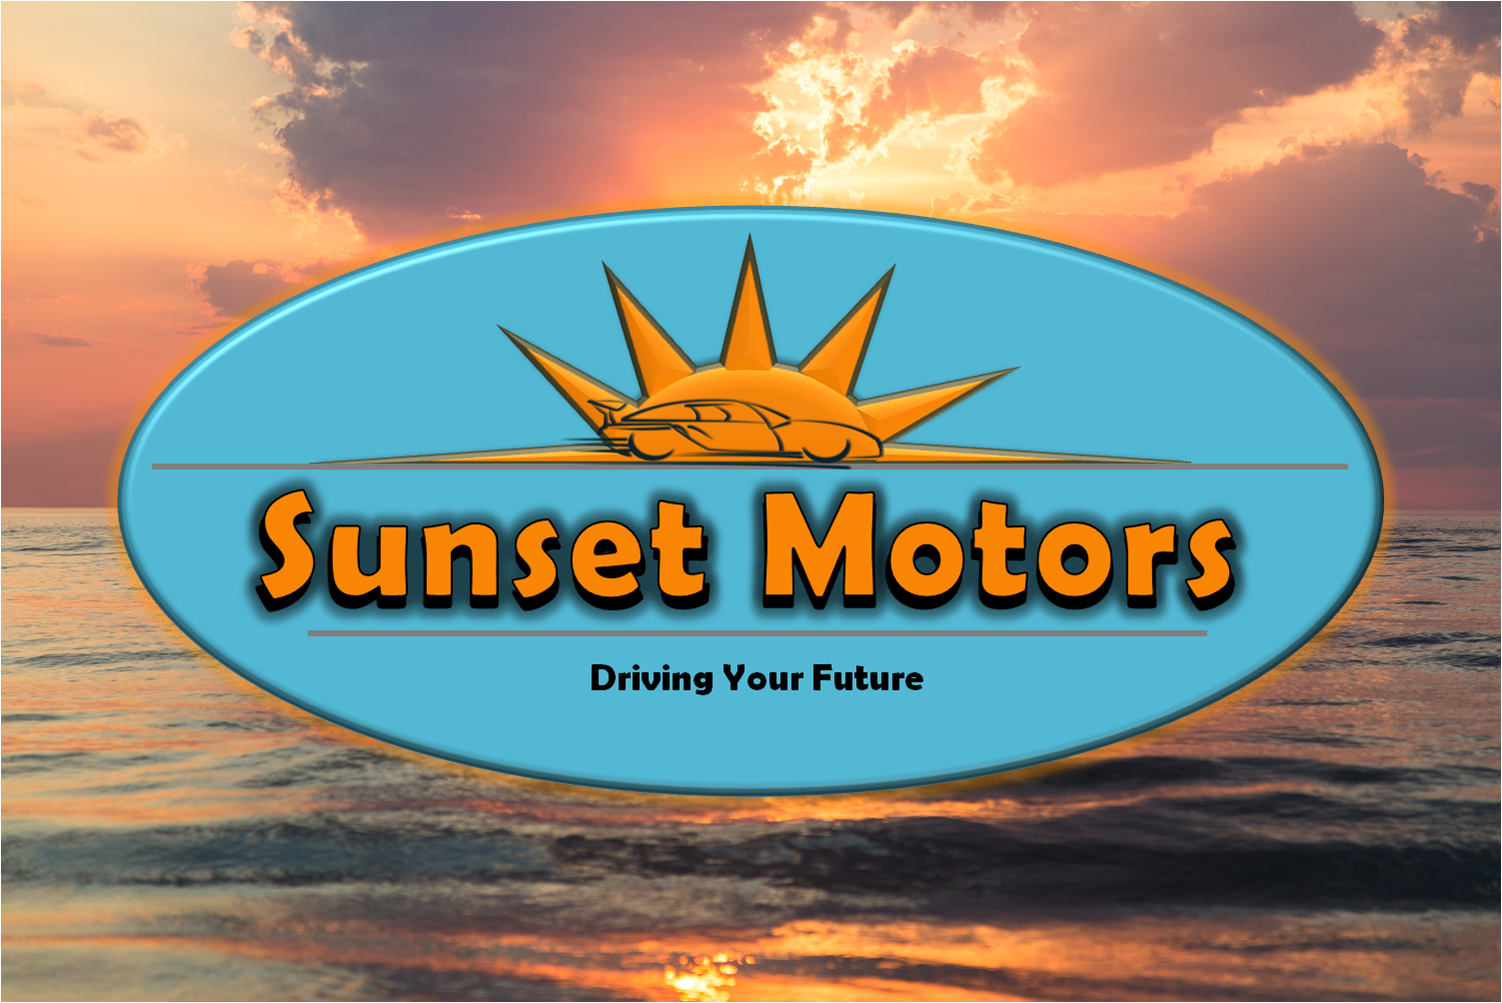 Sunset Motors - New Port Richey, FL: Read Consumer reviews, Browse Used and New Cars for Sale